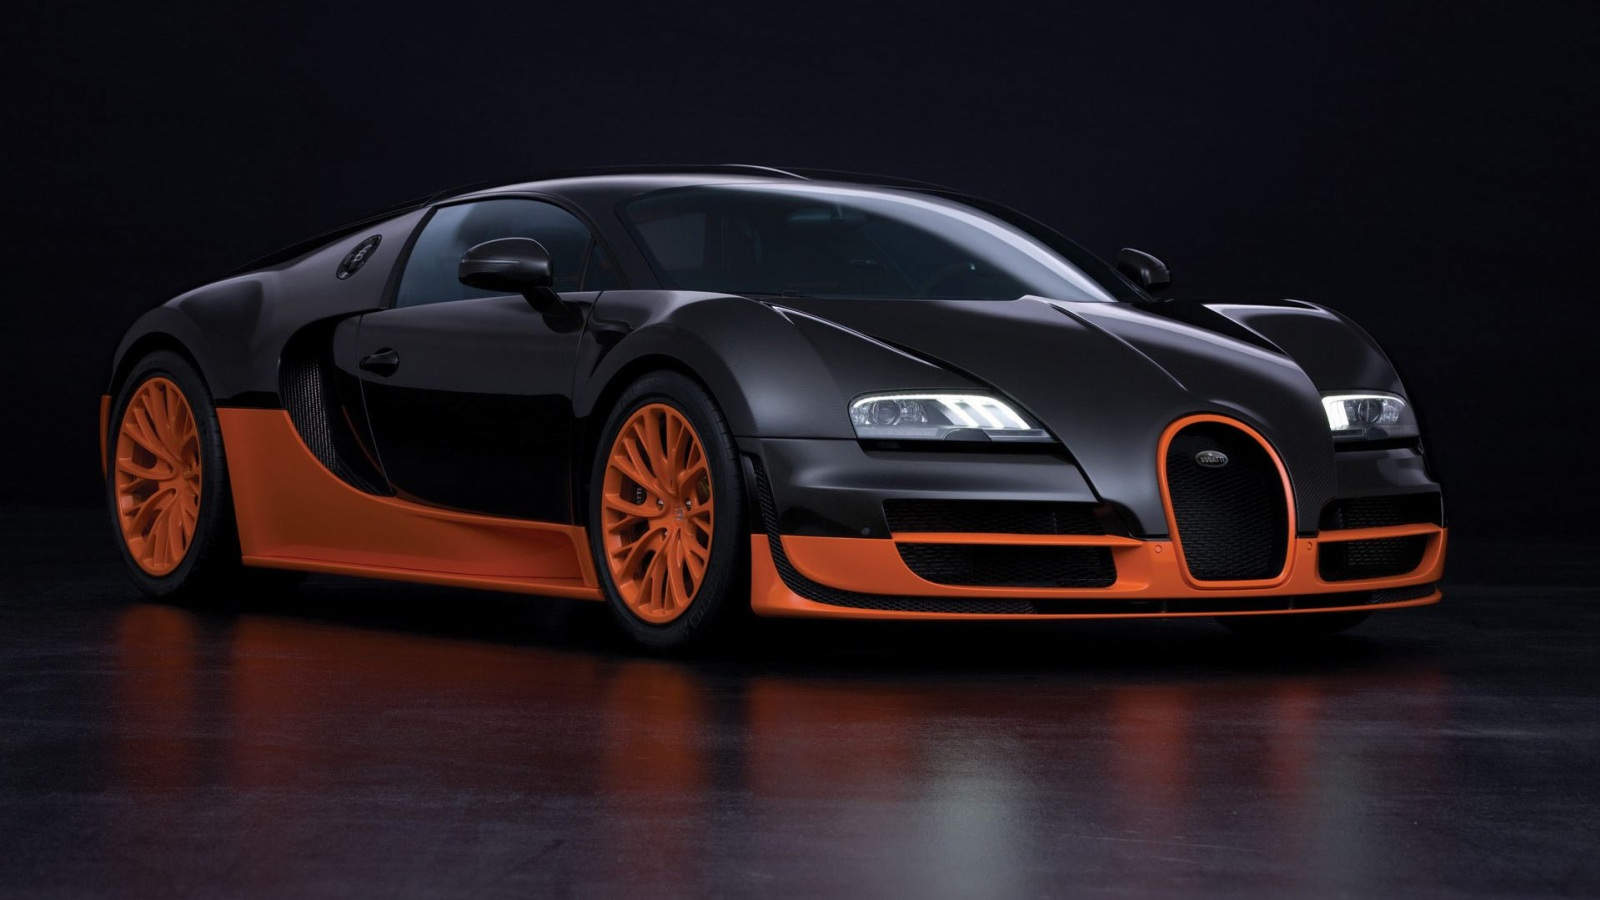 bugatti veyron cost 17 free hd car wallpaper. Black Bedroom Furniture Sets. Home Design Ideas